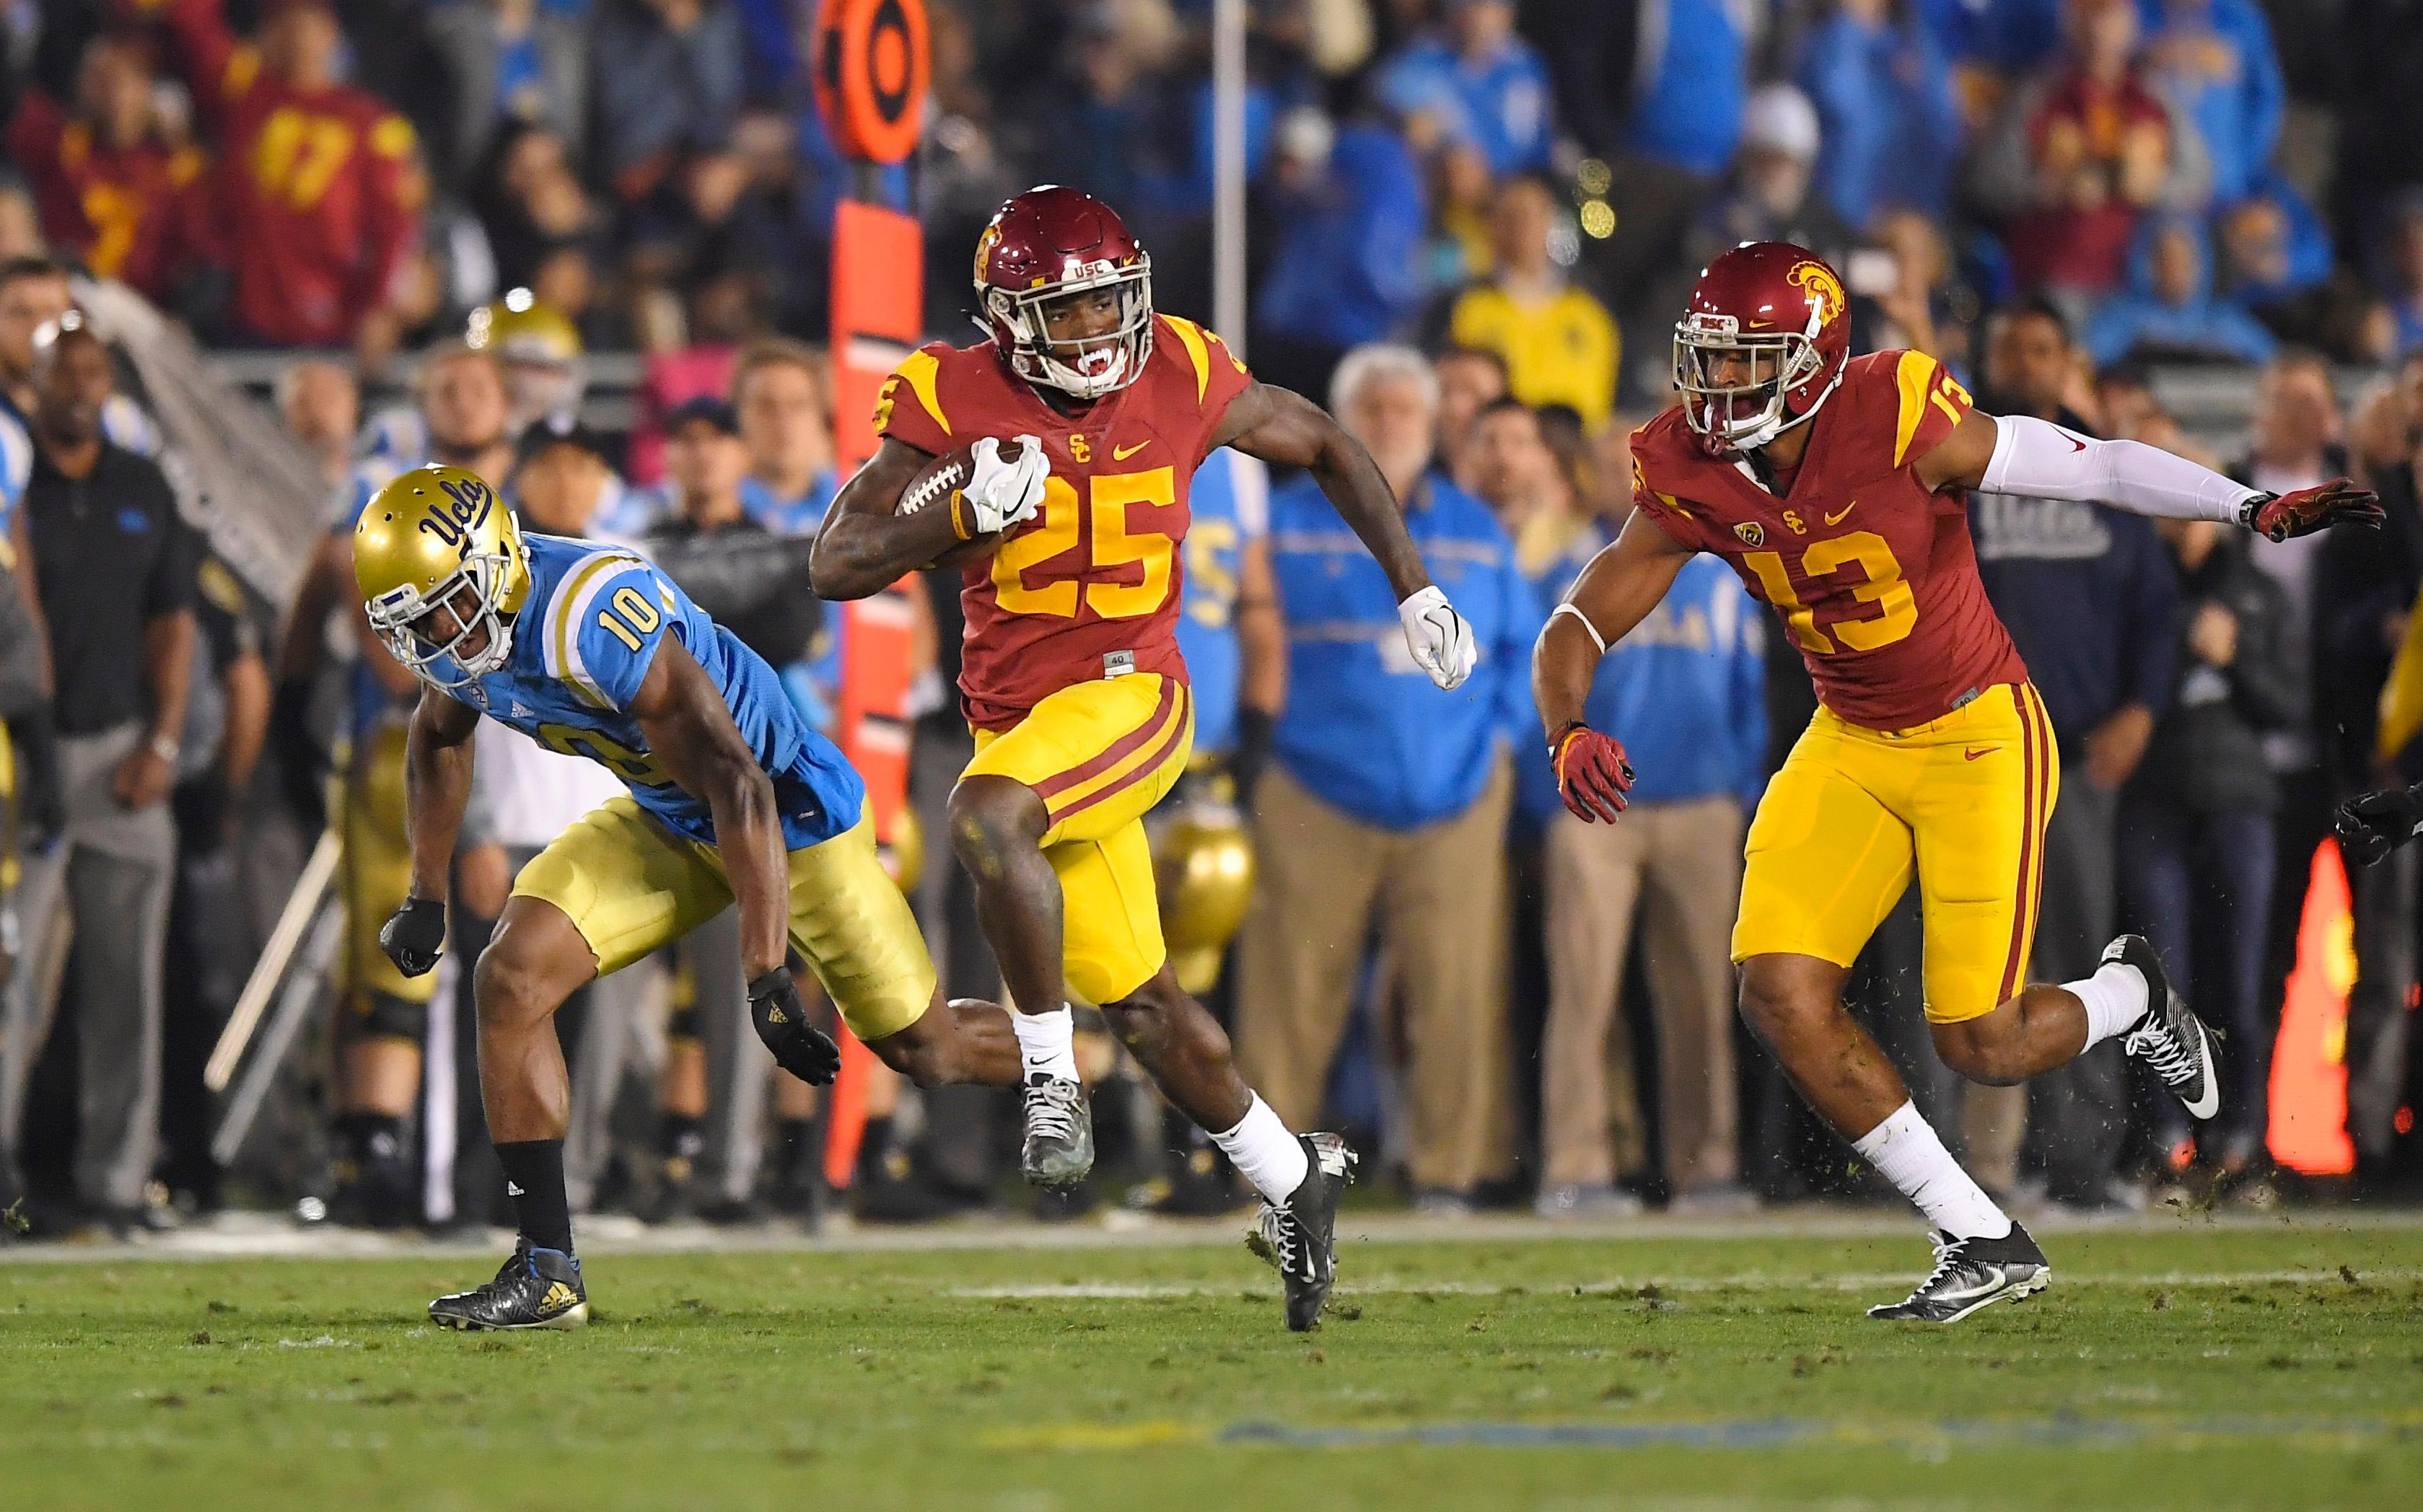 FILE - In this Nov. 19, 2016, file photo, Southern California running back Ronald Jones II, center, runs 60 yards for a touchdown as UCLA defensive back Fabian Moreau, left, runs behind along with wide receiver De'Quan Hampton during the first half of an NCAA college football game, in Pasadena, Calif. Jones was selected to the 2017 AP All-Conference Pac-12 team announced Thursday, Dec. 7, 2017. (AP Photo/Mark J. Terrill, File)